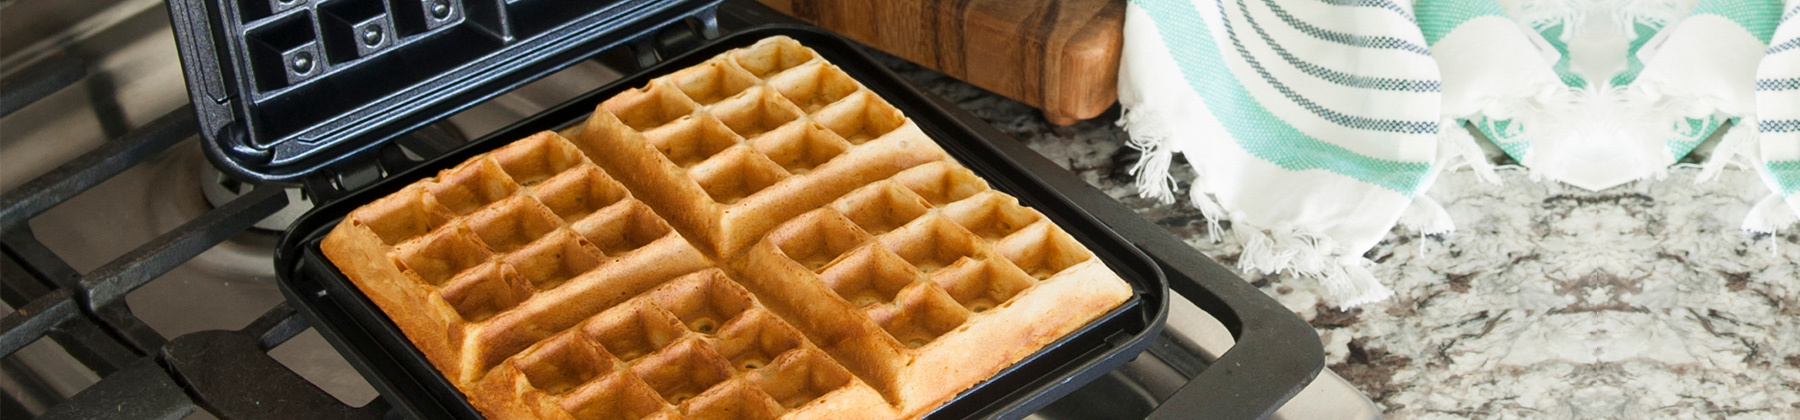 Photo of waffle makers.